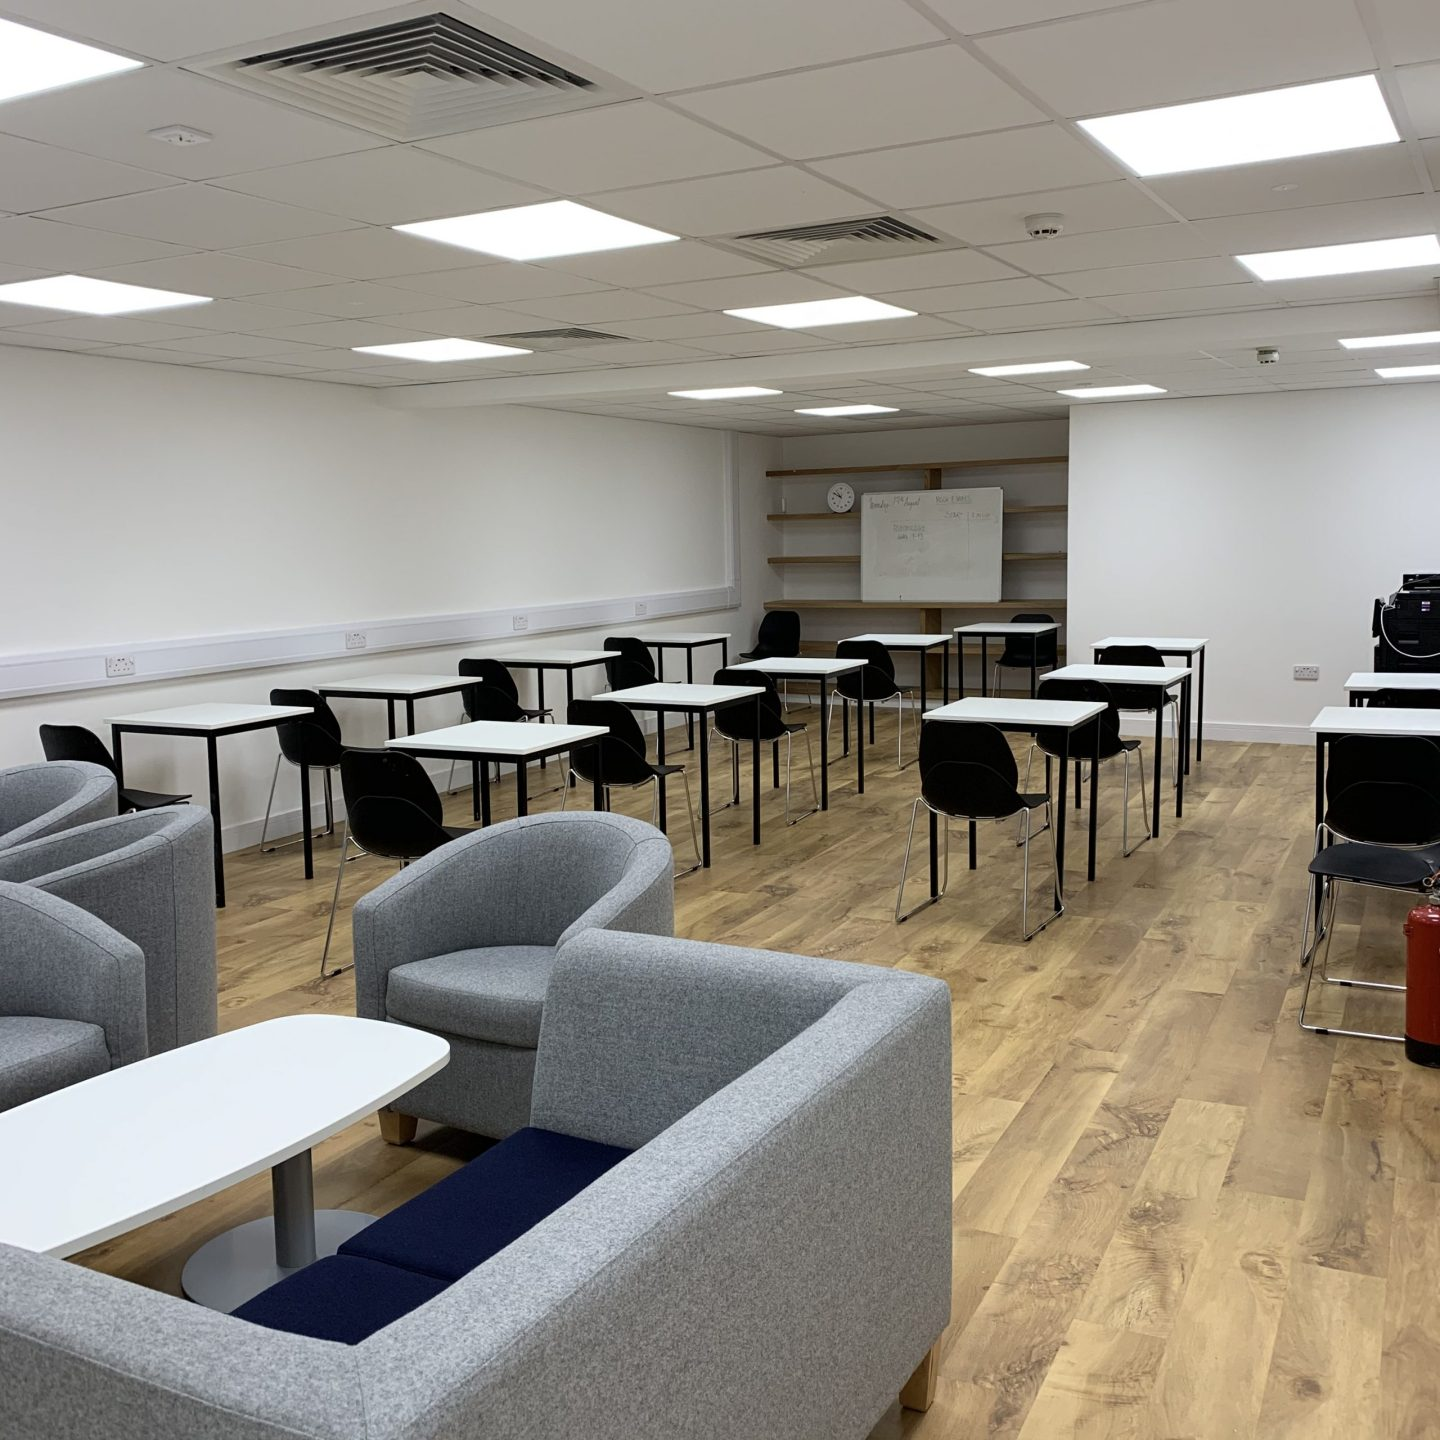 A renovated classroom at the Oxford International College